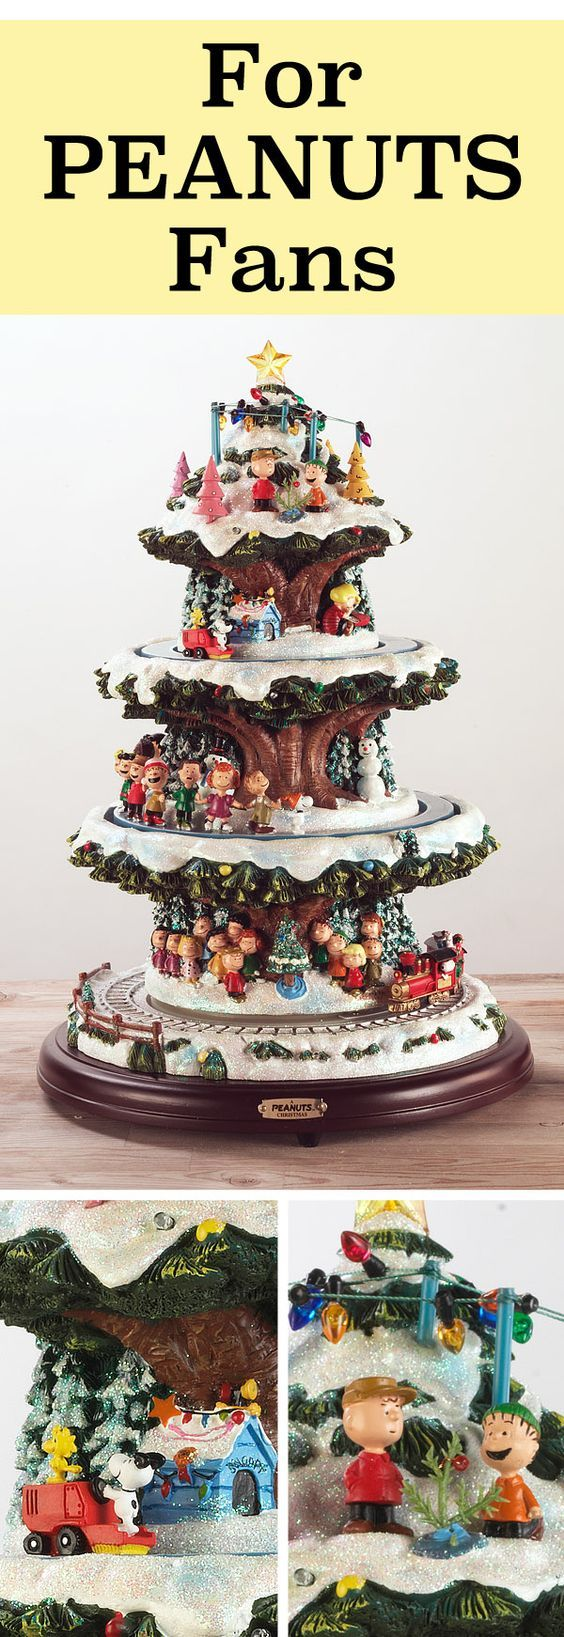 Celebrate the holidays with Charlie Brown, Snoopy and all your favorite PEANUTS characters in this Christmas tabletop tree. Features multiple levels of unique lights, motion and music directly from the classic soundtrack by Vince Guaraldi and Lee Mendelson.